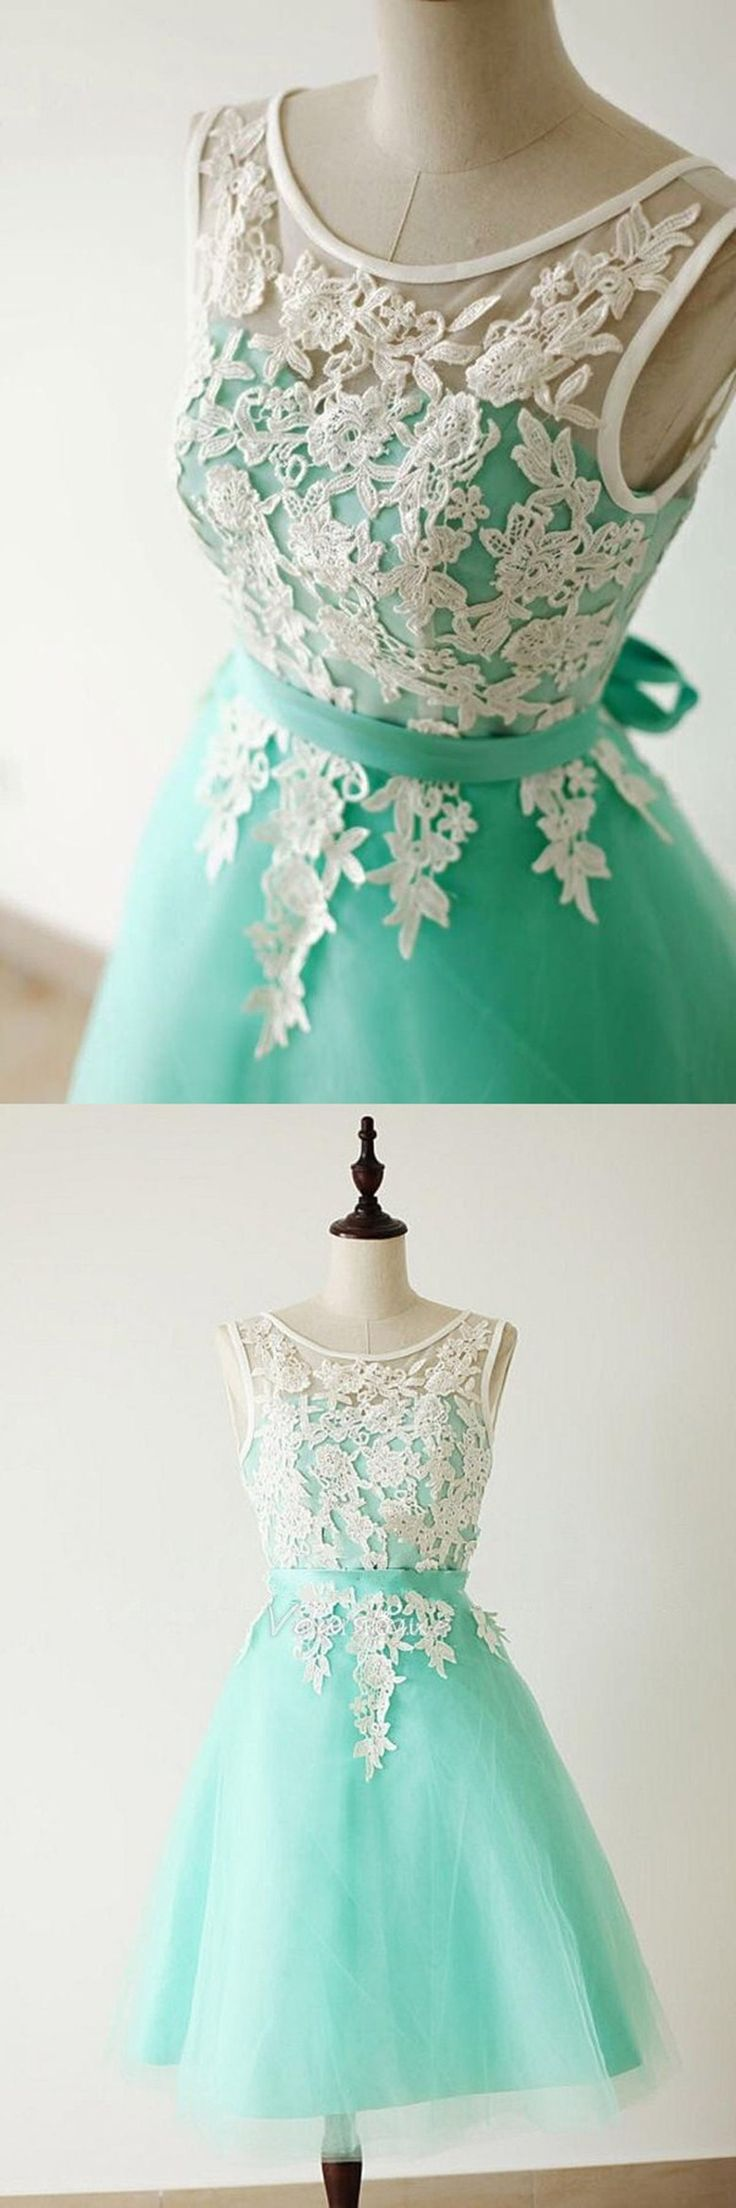 Homecoming dress,short homecoming dress,mint homecoming dress,homecoming dress…